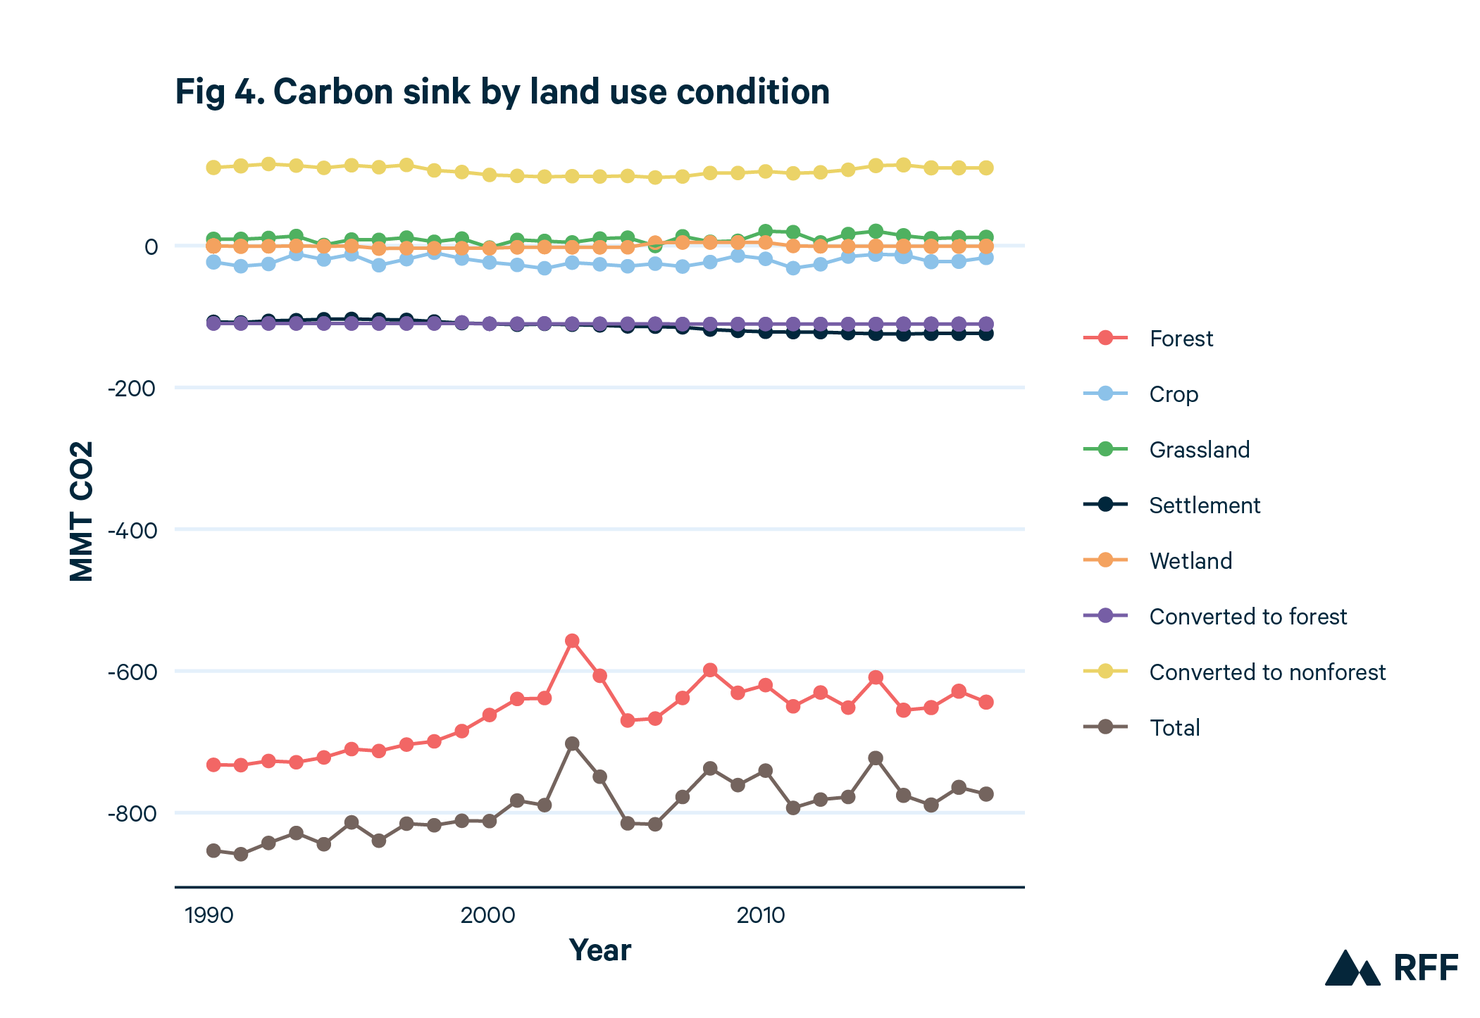 Net emissions of land use conditions and land use changes in the United States from 1990 to 2018. This infographic shows the carbon sink by land use condition including forest, crop, grassland, settlement, wetland, converted to forest, and more.